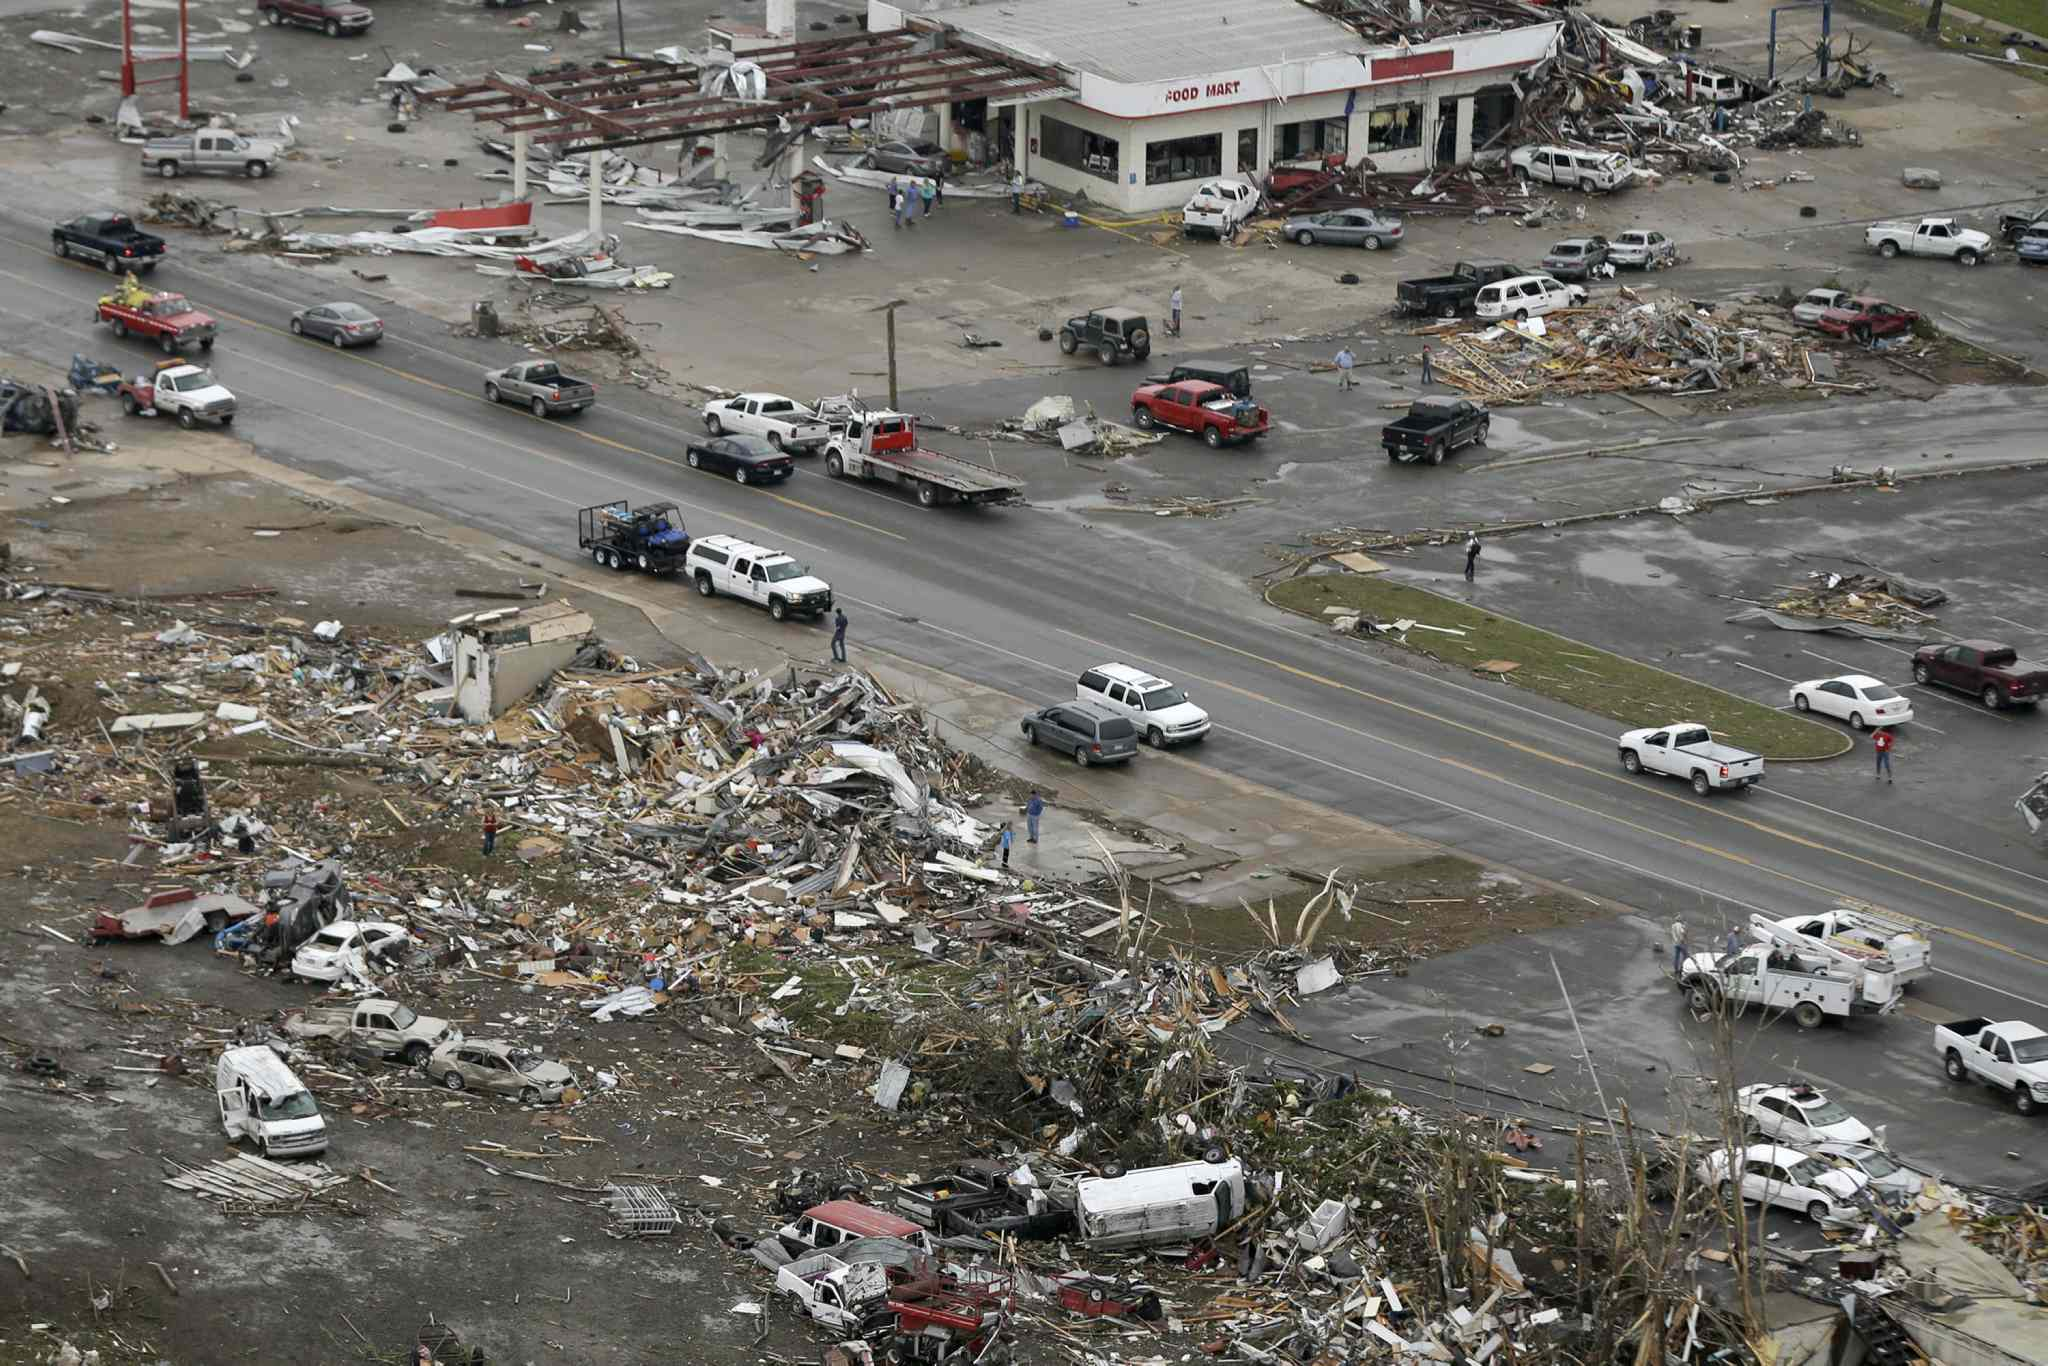 Homes and businesses are wrecked in downton Vilonia, Ark., Monday, April 28, 2014 after a tornado struck the town late Sunday.